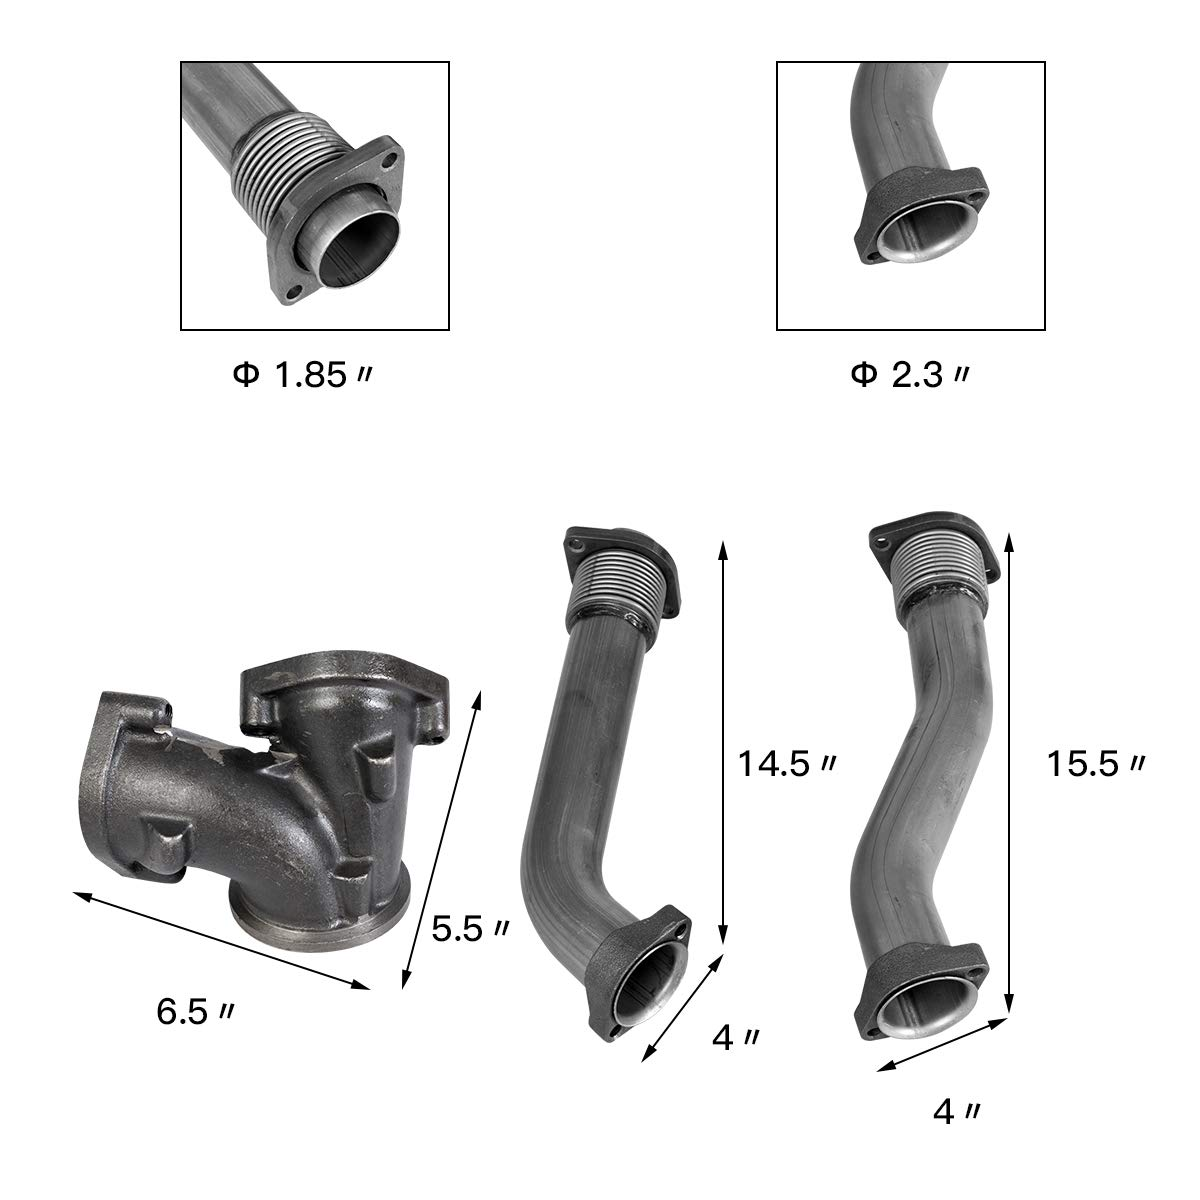 7.3L-V8 Goplus PowerStroke Turbo Diesel w//Hardware Exhaust Manifold Bellowed Up Pipe Kit for 1995-2003 Ford F-350 Stainless Steel Exhaust Up Pipes /& Gaskets